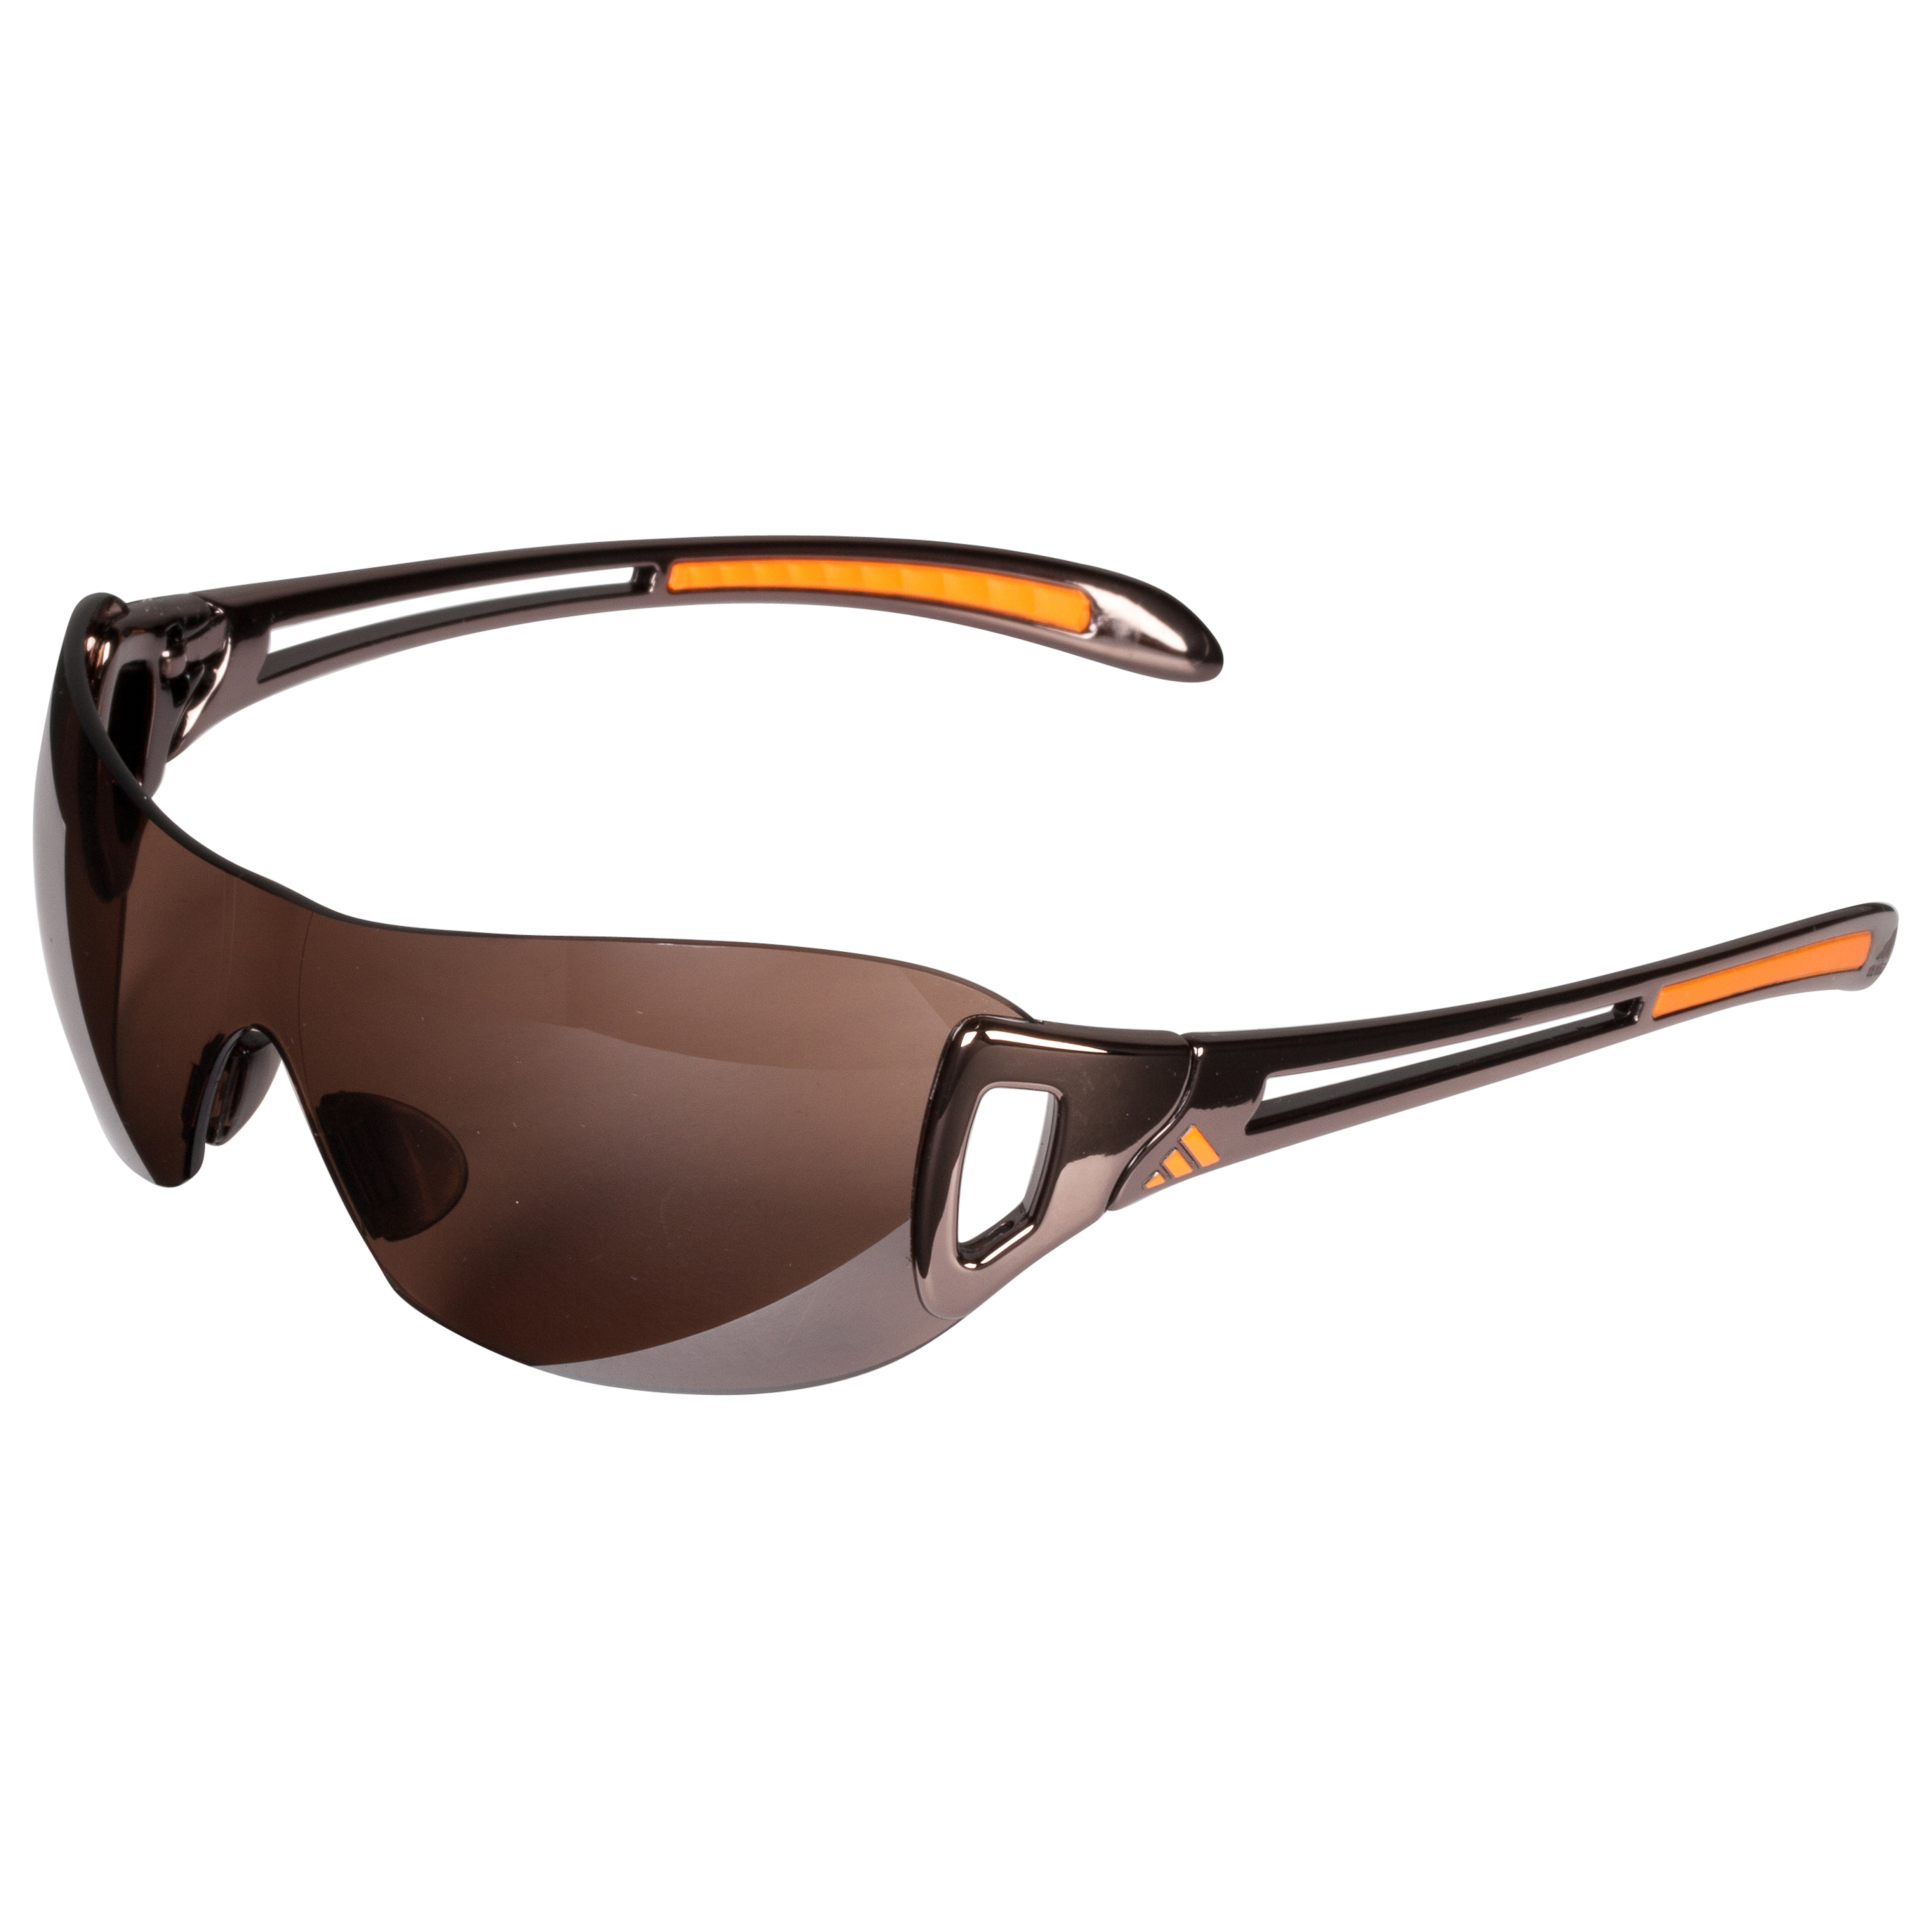 Adidas Adilibria Shield Sunglasses - Copper